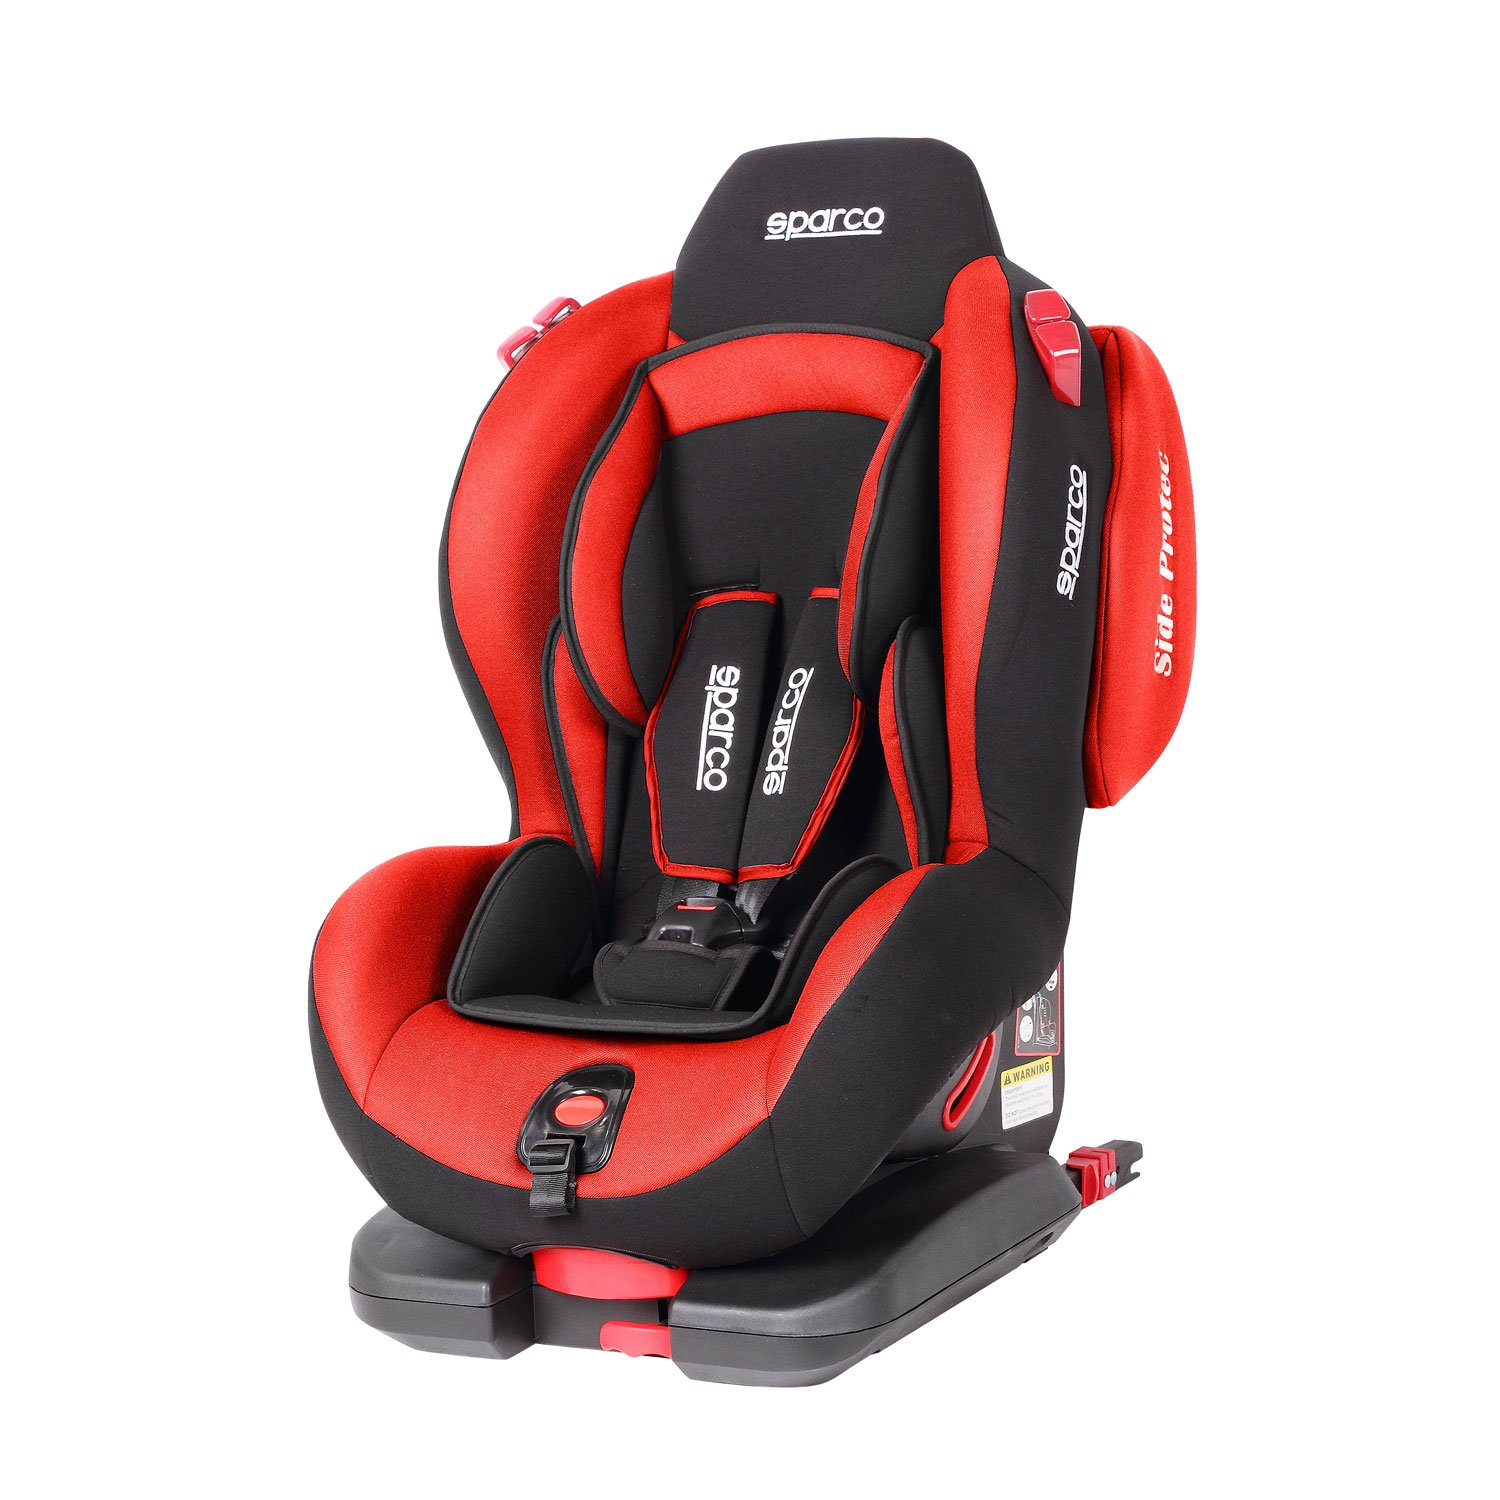 Sparco F500I Evo Red Child Seat 9 25 Kg 19 55 Lbs